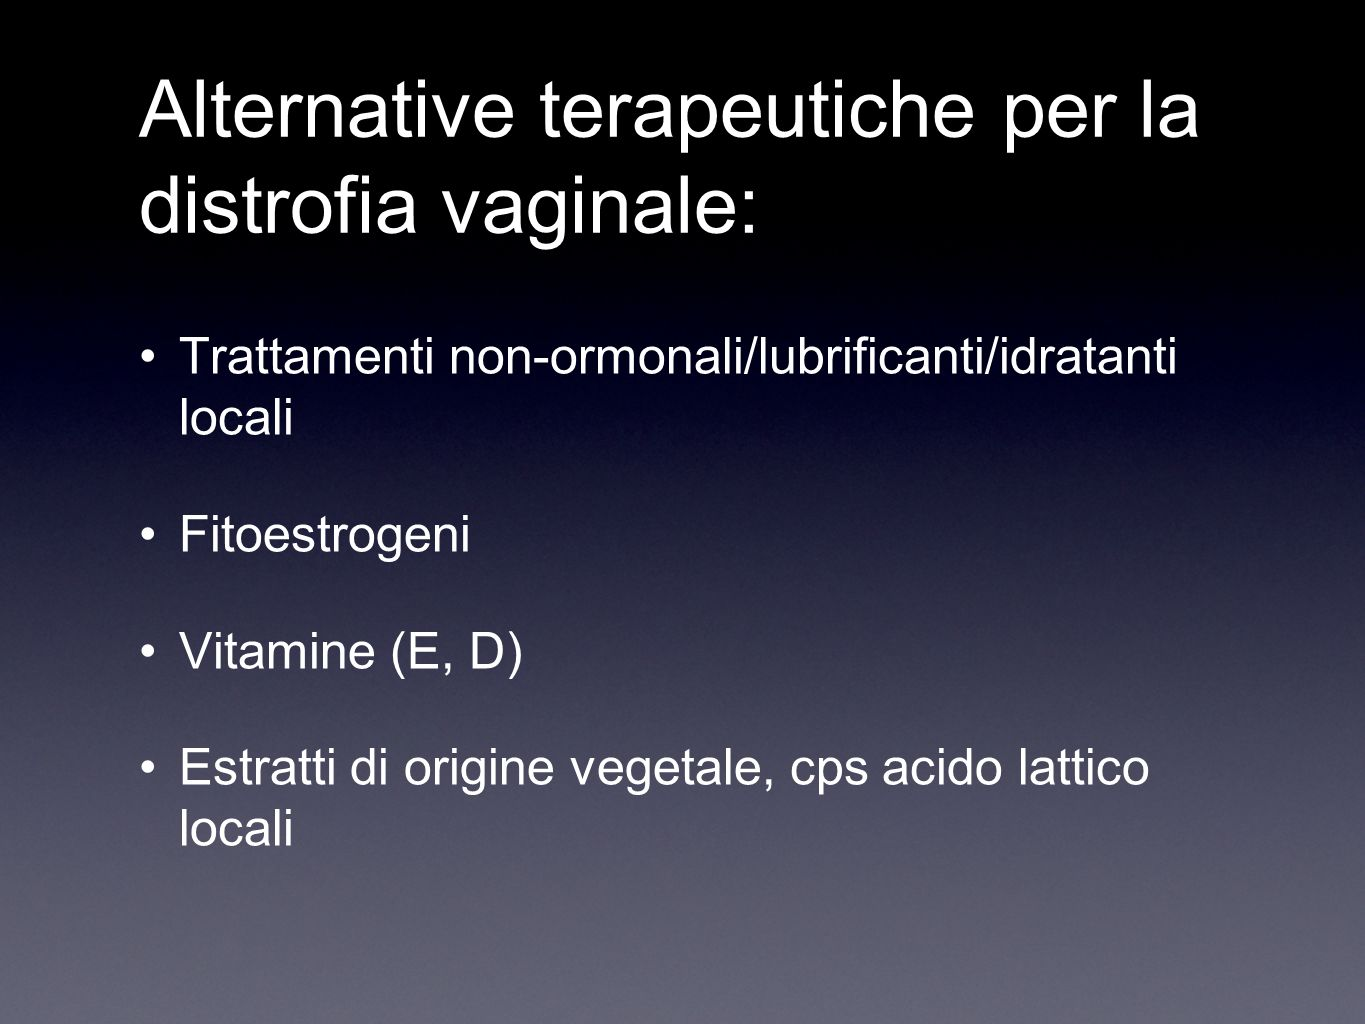 Alternative terapeutiche per la distrofia vaginale: